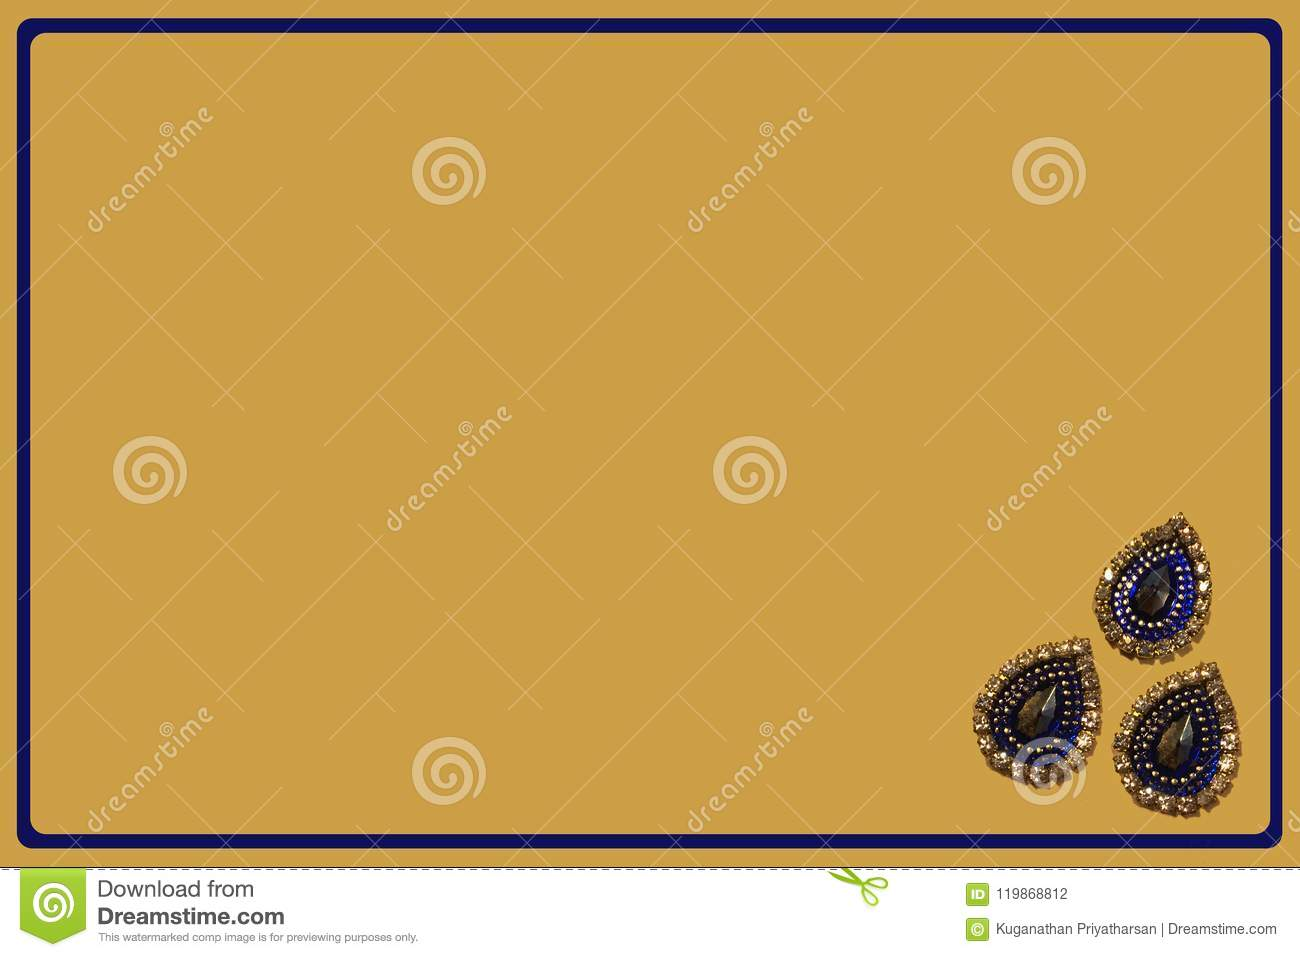 Template for greeting cards invitations posters etc stock photo template for greeting cards invitations posters etc m4hsunfo